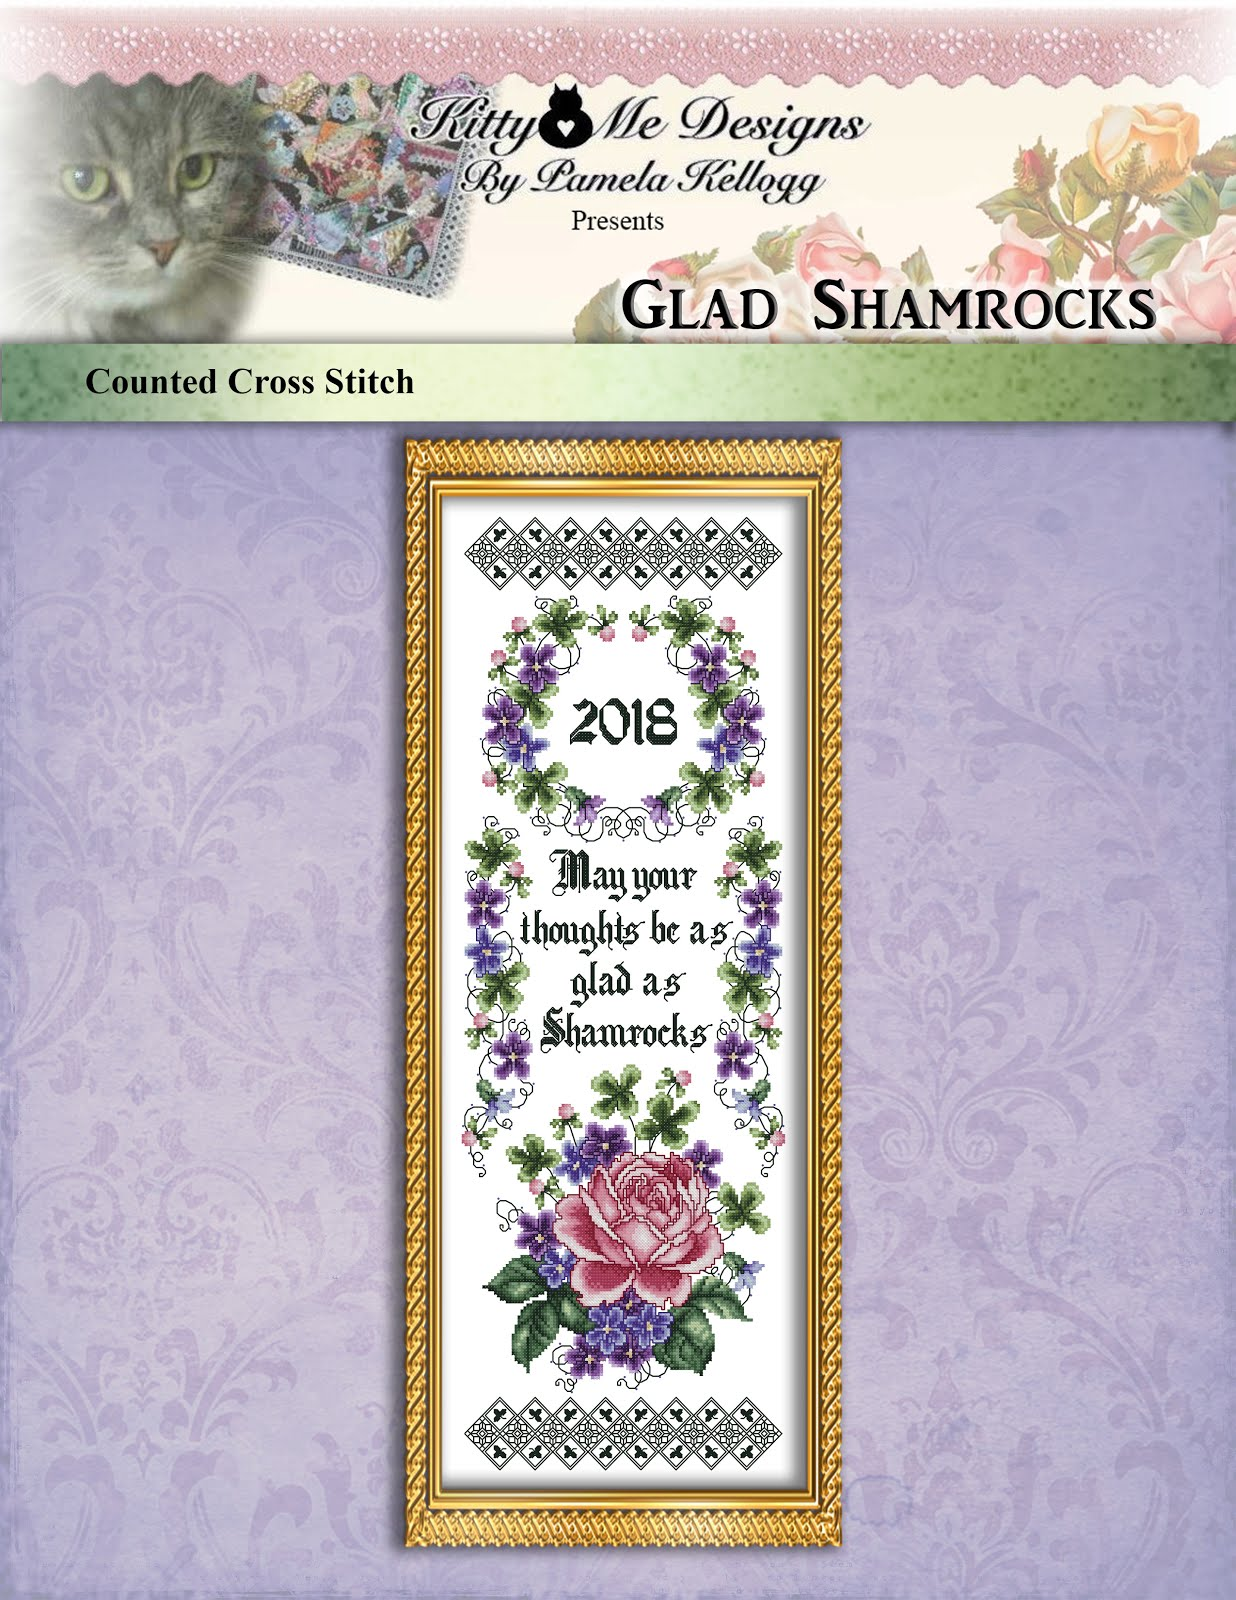 Glad Shamrocks